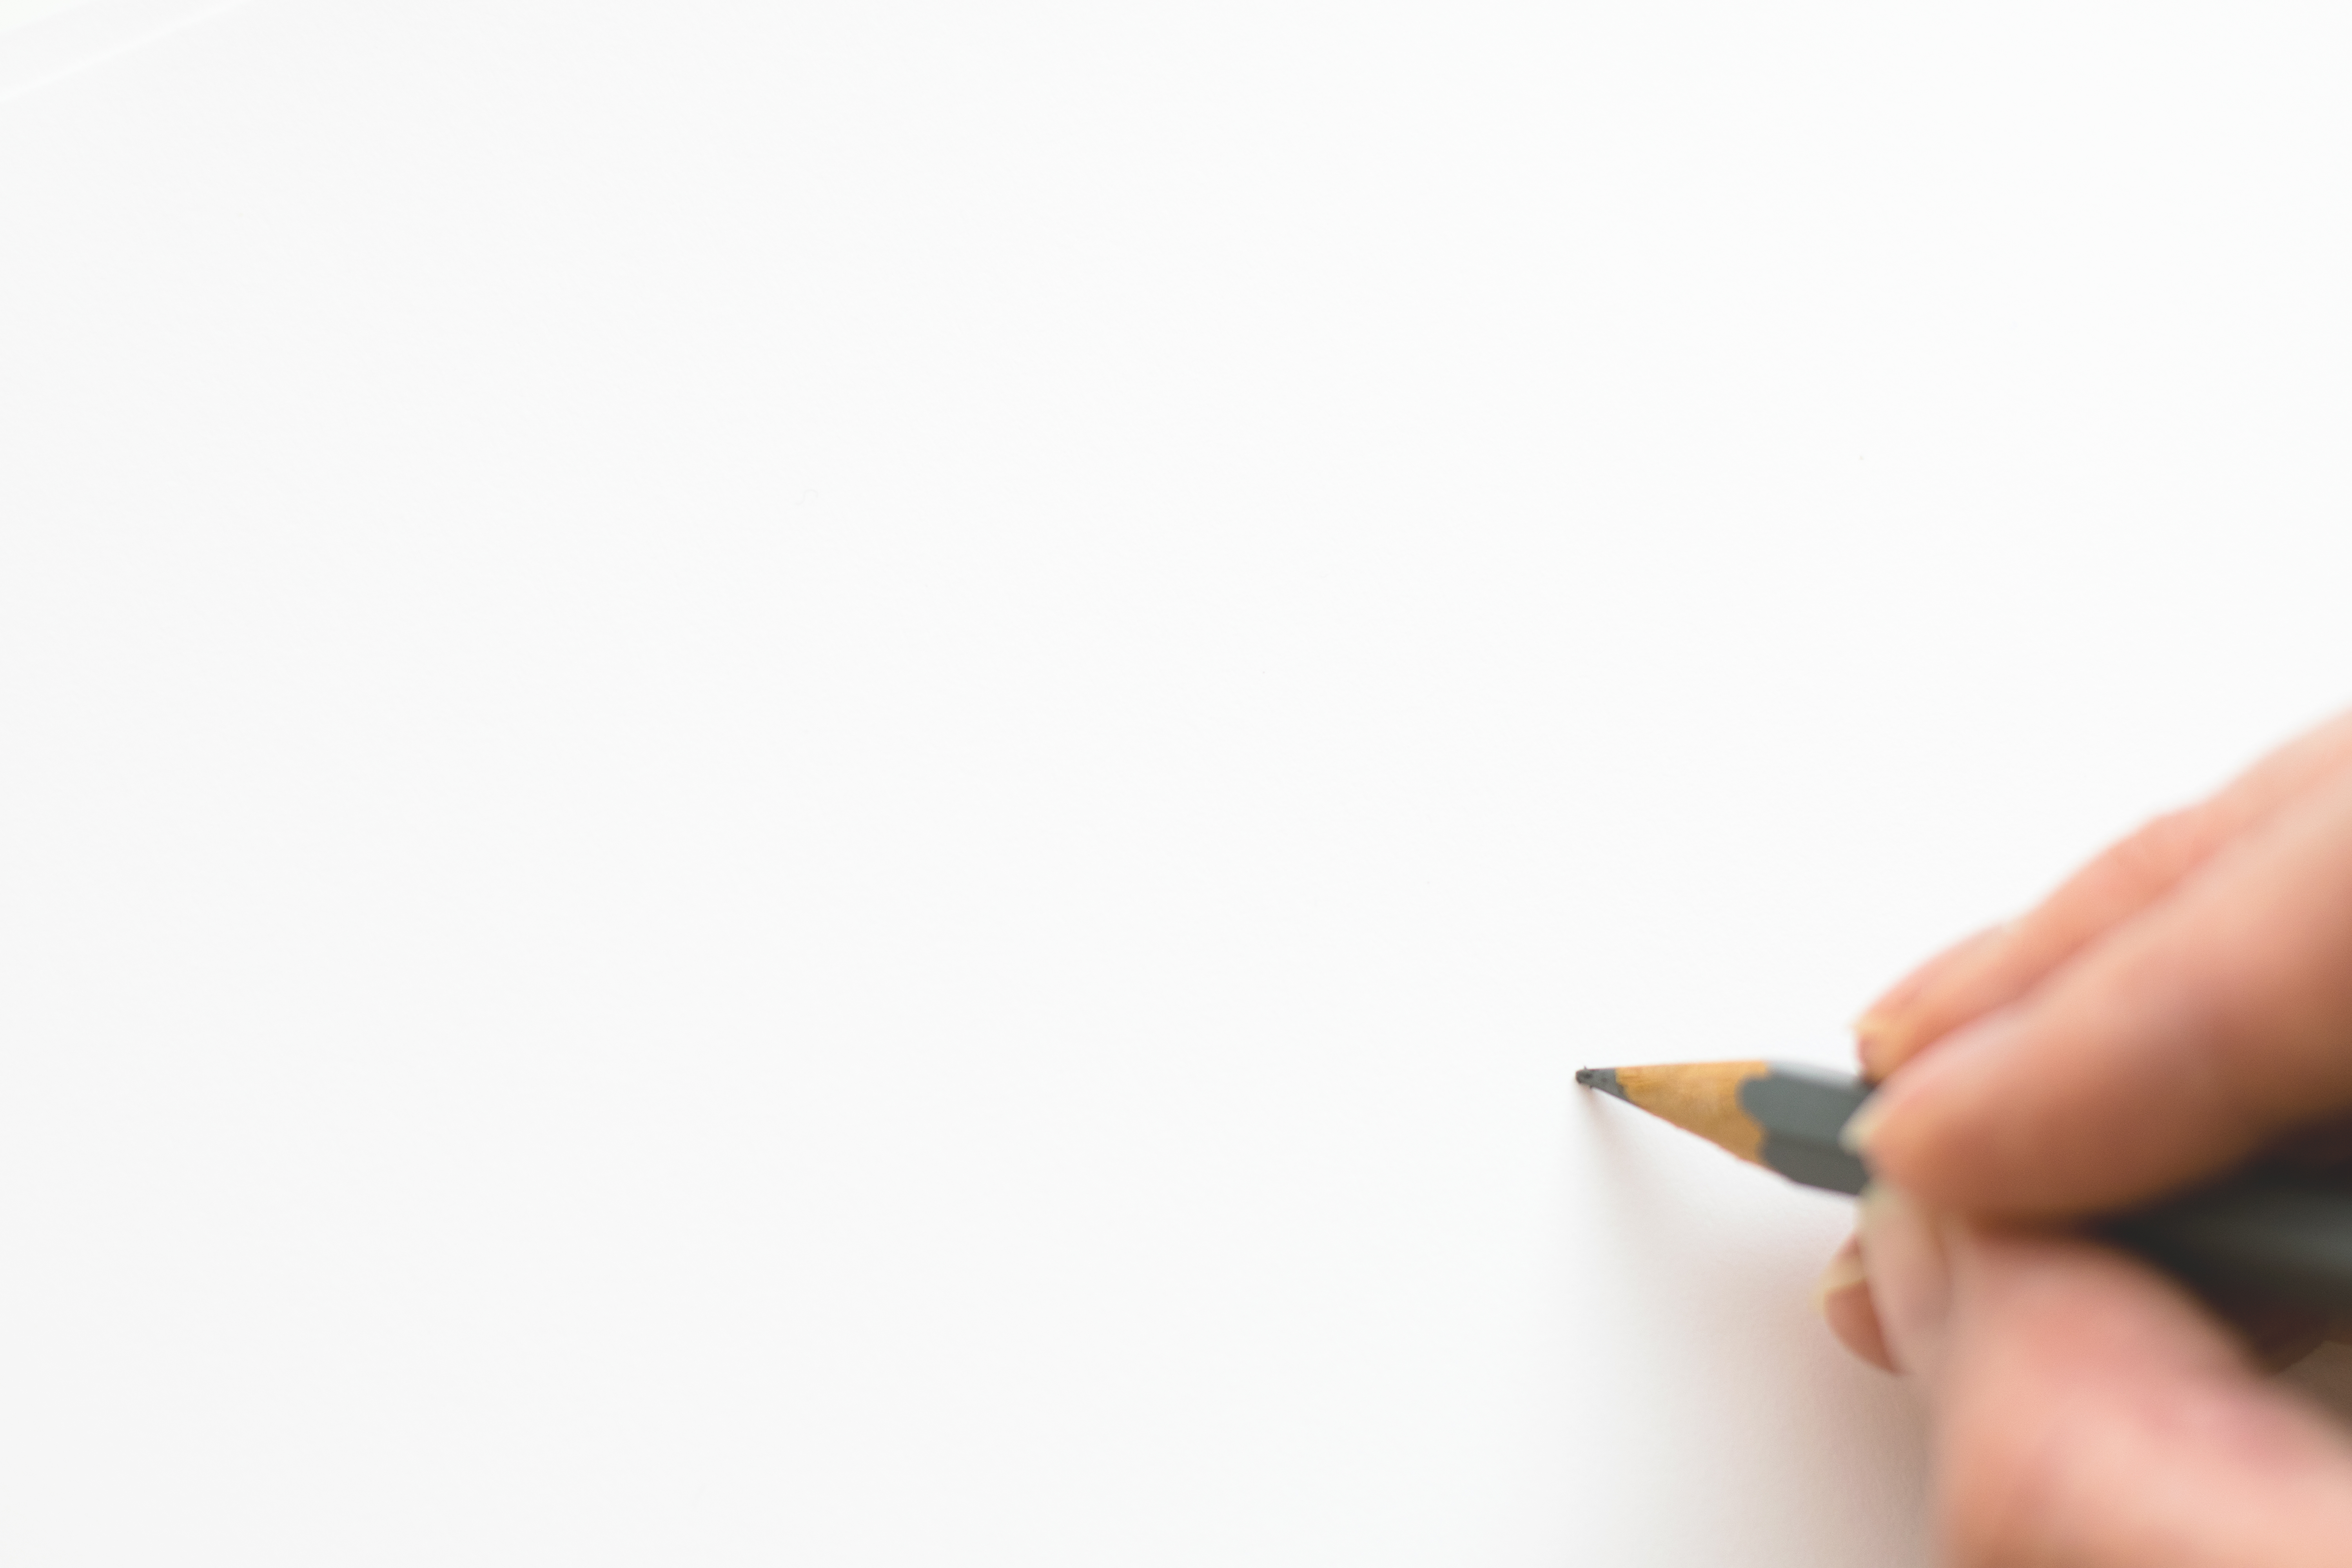 Close-up of Hand Holding Pencil over White Background